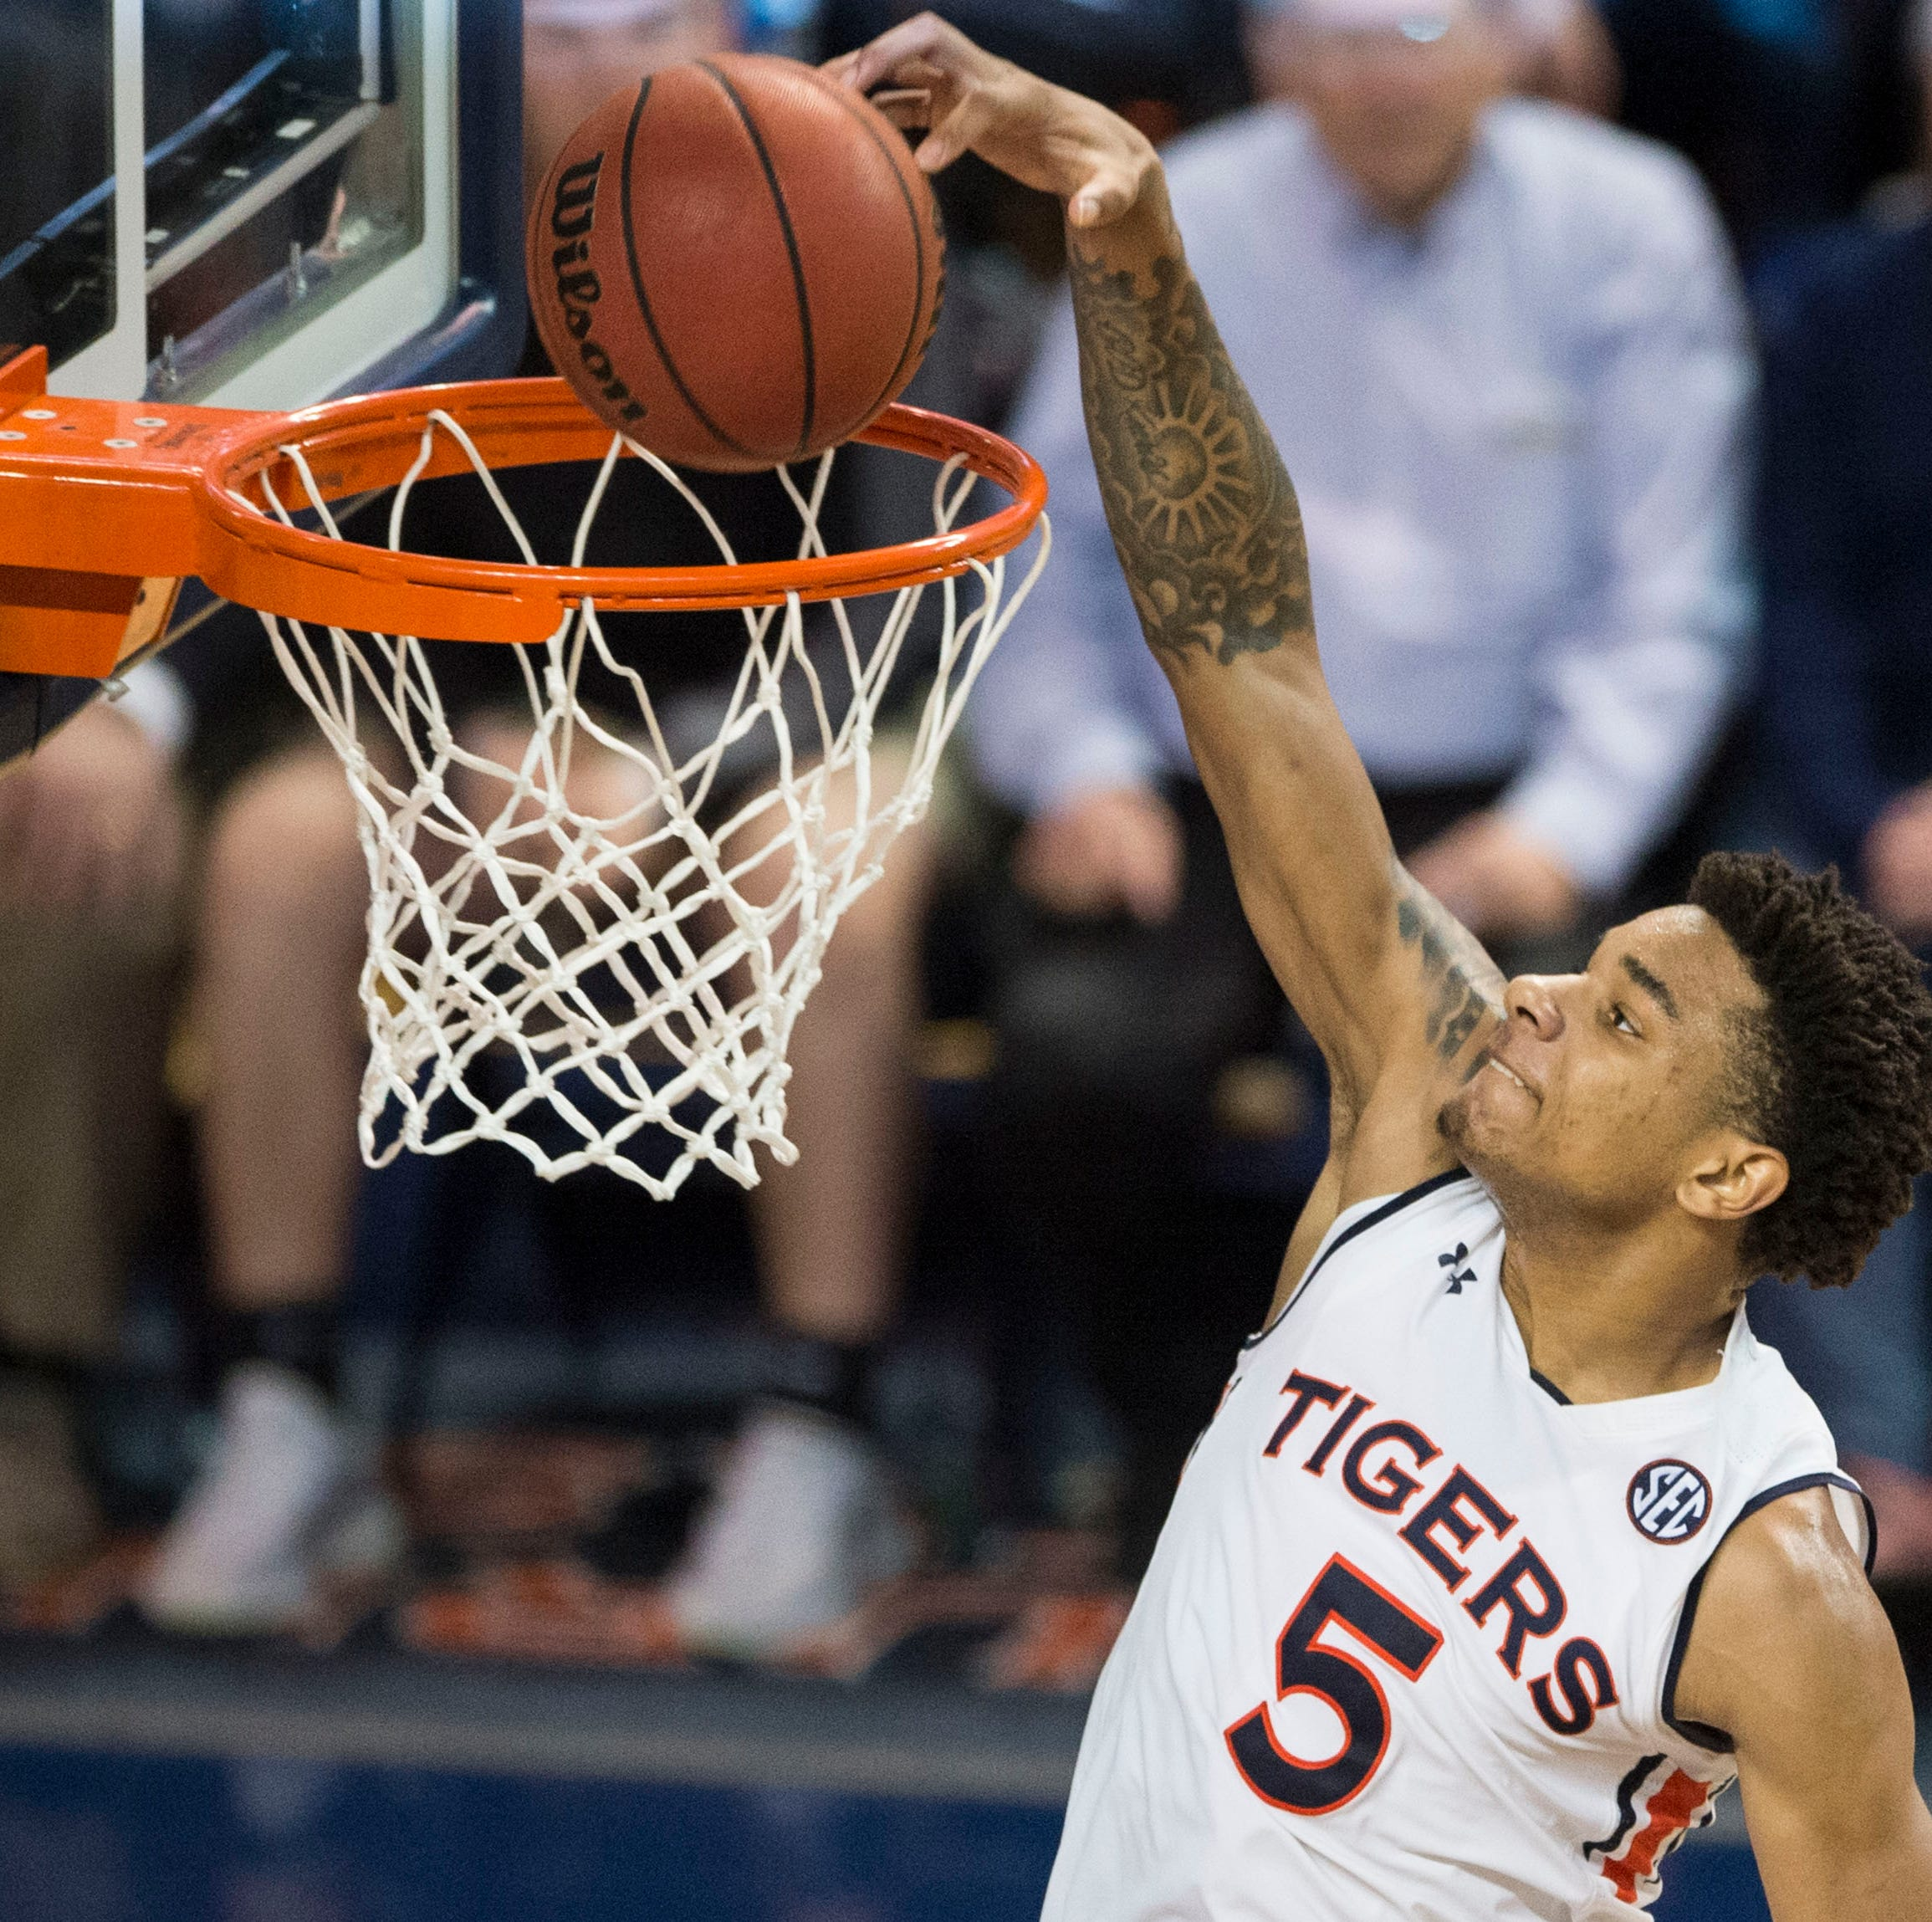 Auburn's Chuma Okeke faces fascinating NBA Draft decision